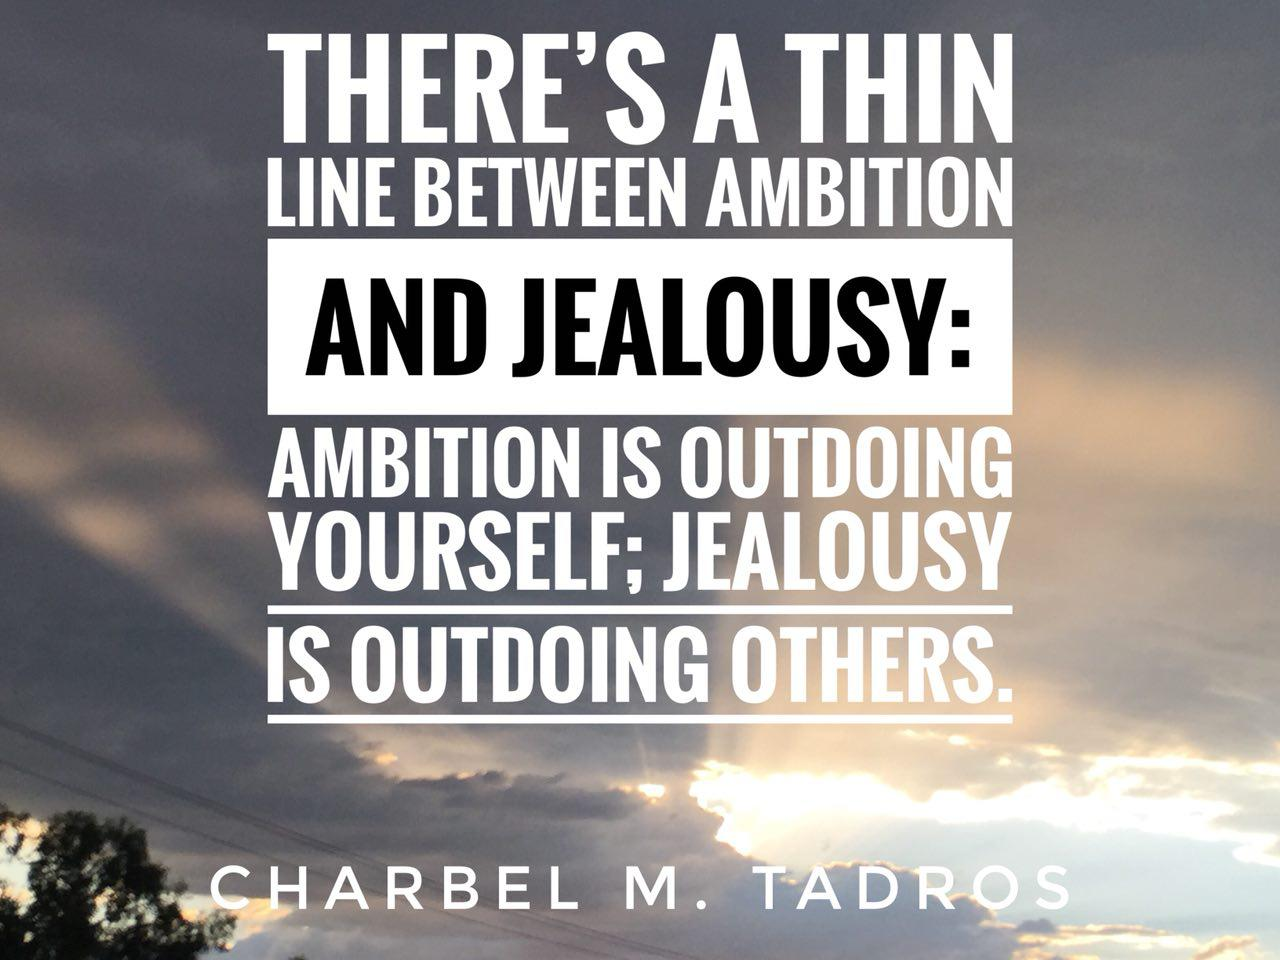 there's a thin line between ambition and jealousy: ambition is outdoing yourself; jealousy is outdoing others.